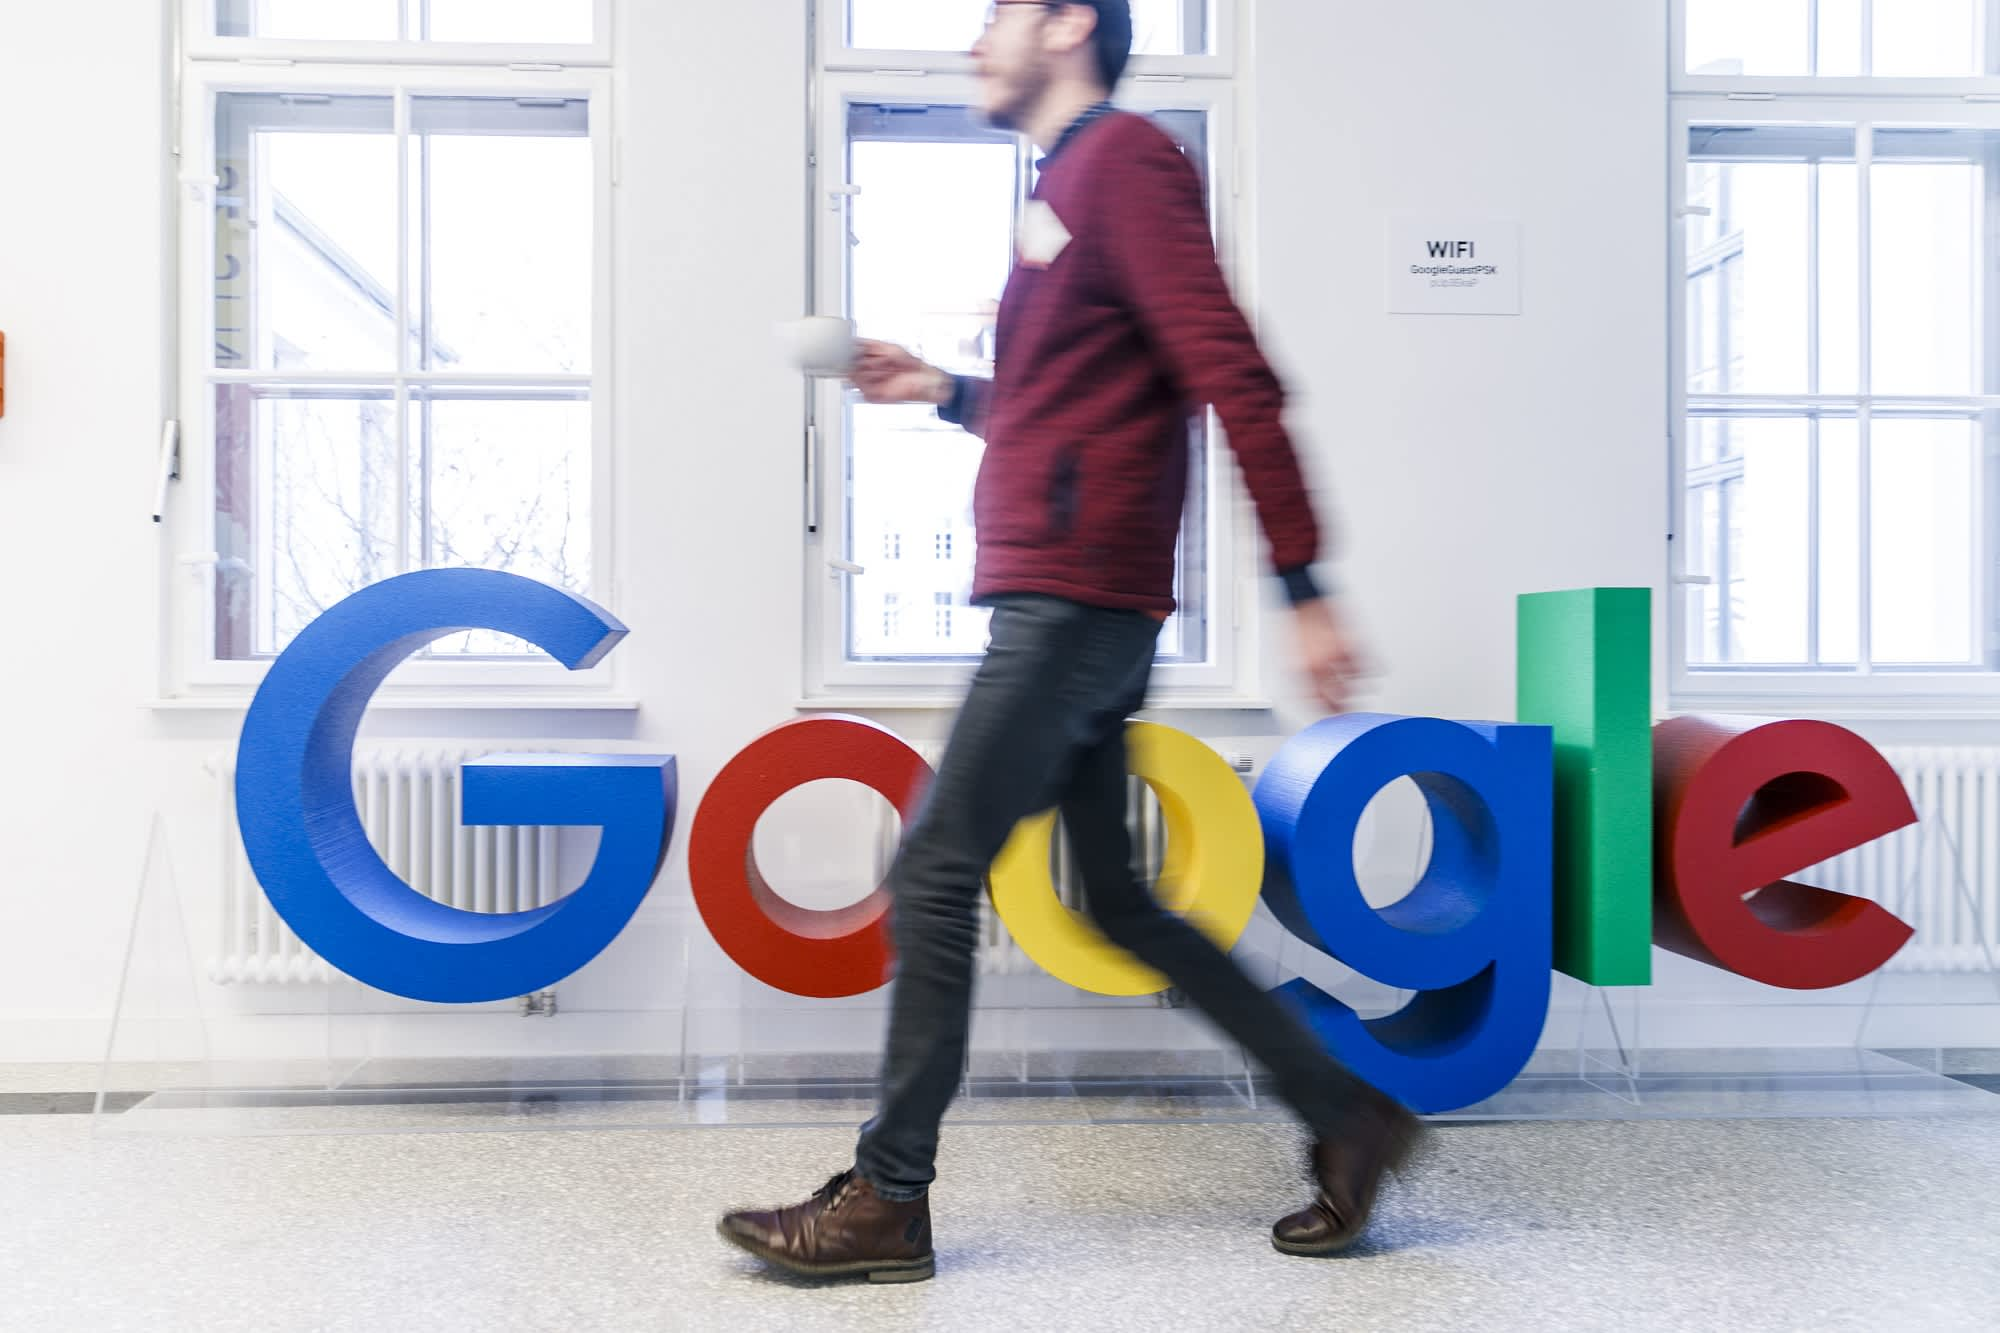 Here's why you should buy Google before it 'unlocks' its real value, according to Jefferies